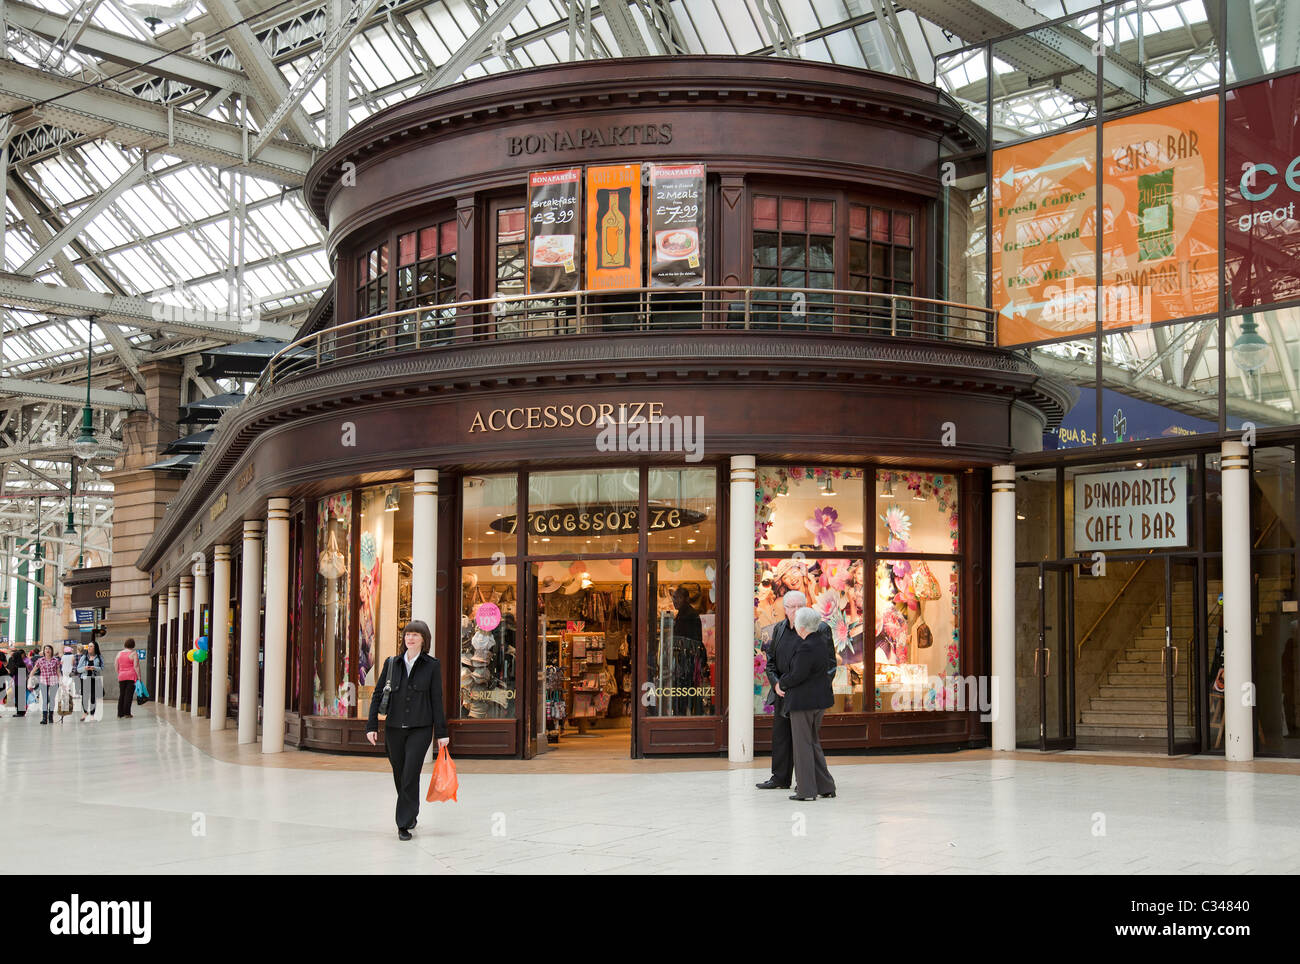 Accessorize retail outlet and Bonaparte's pub in Glasgow Central Station concourse. - Stock Image